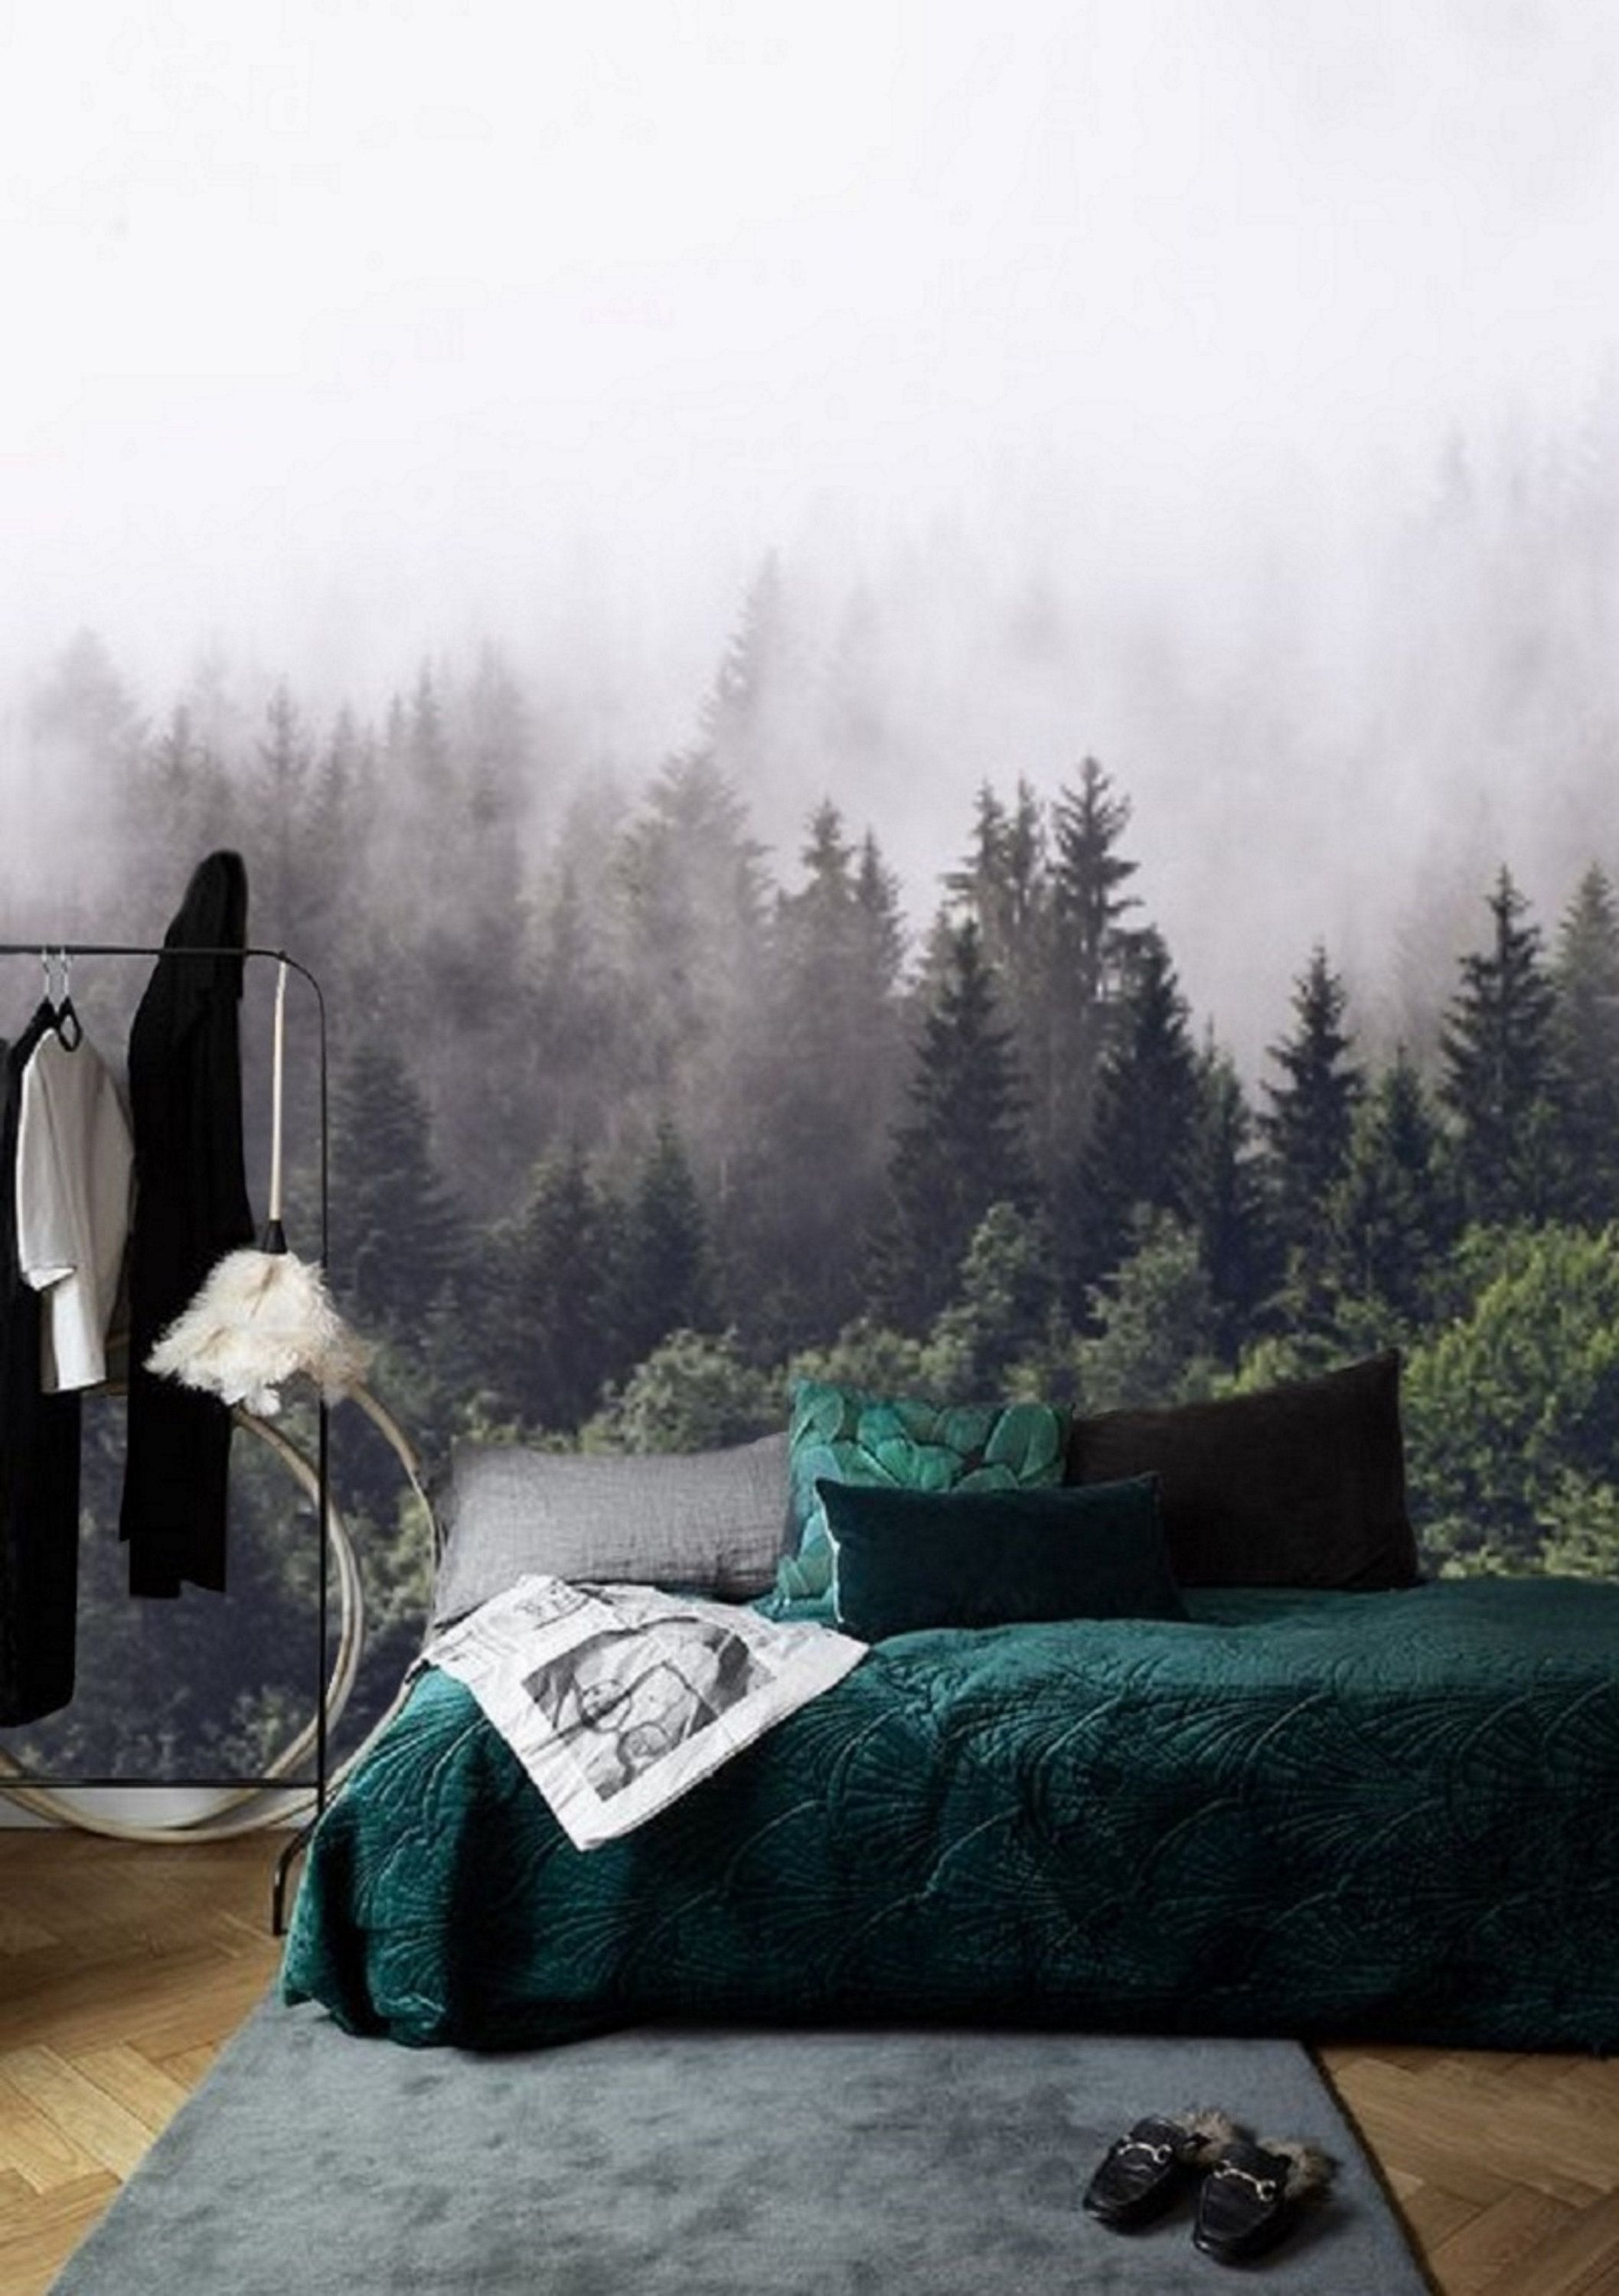 Foggy Forest Wallpaper Mural Peel And Stick Wall Paper Removable Wallpaper Forest Mural Remove Wallpaper Green Misty Forest Wall Mural 92 Forest Wallpaper Forest Wall Mural Forest Mural